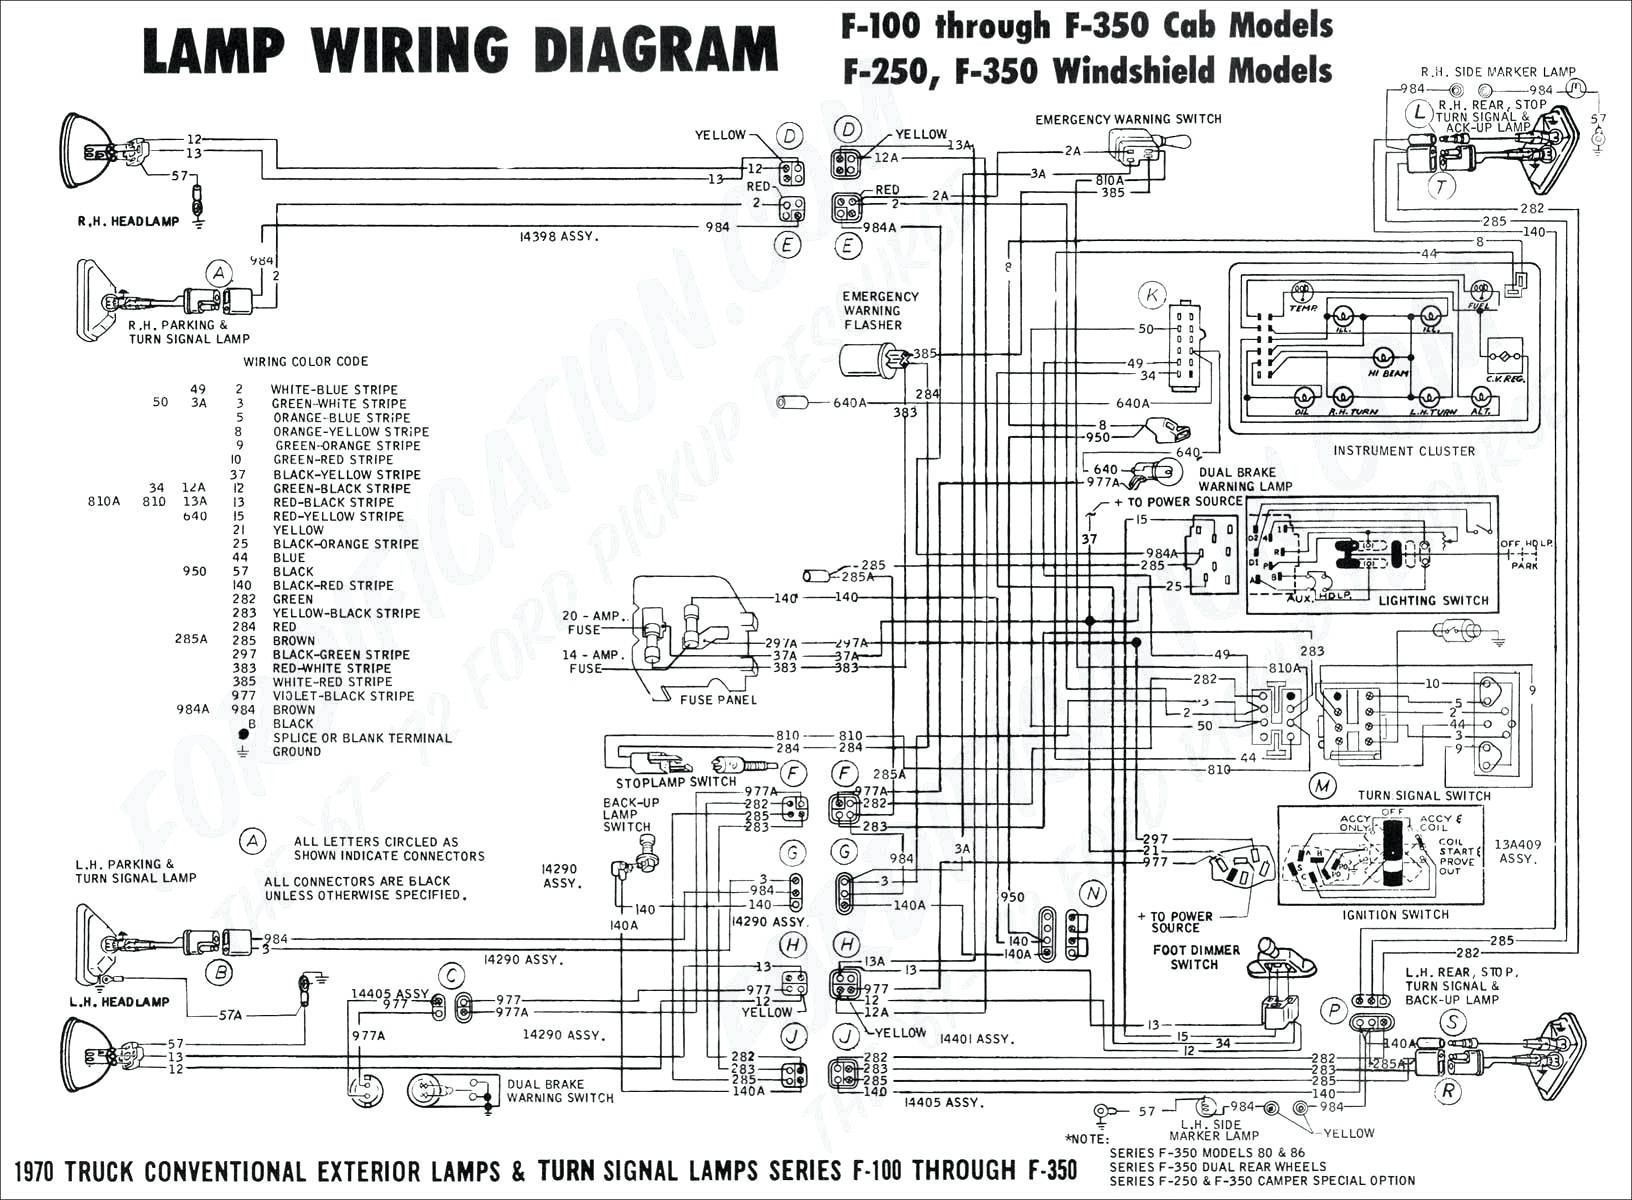 Smart Car Wiring Diagram Wiring Diagram Car Ac Best 2004 Silverado Ac Schematic Schematics Of Smart Car Wiring Diagram